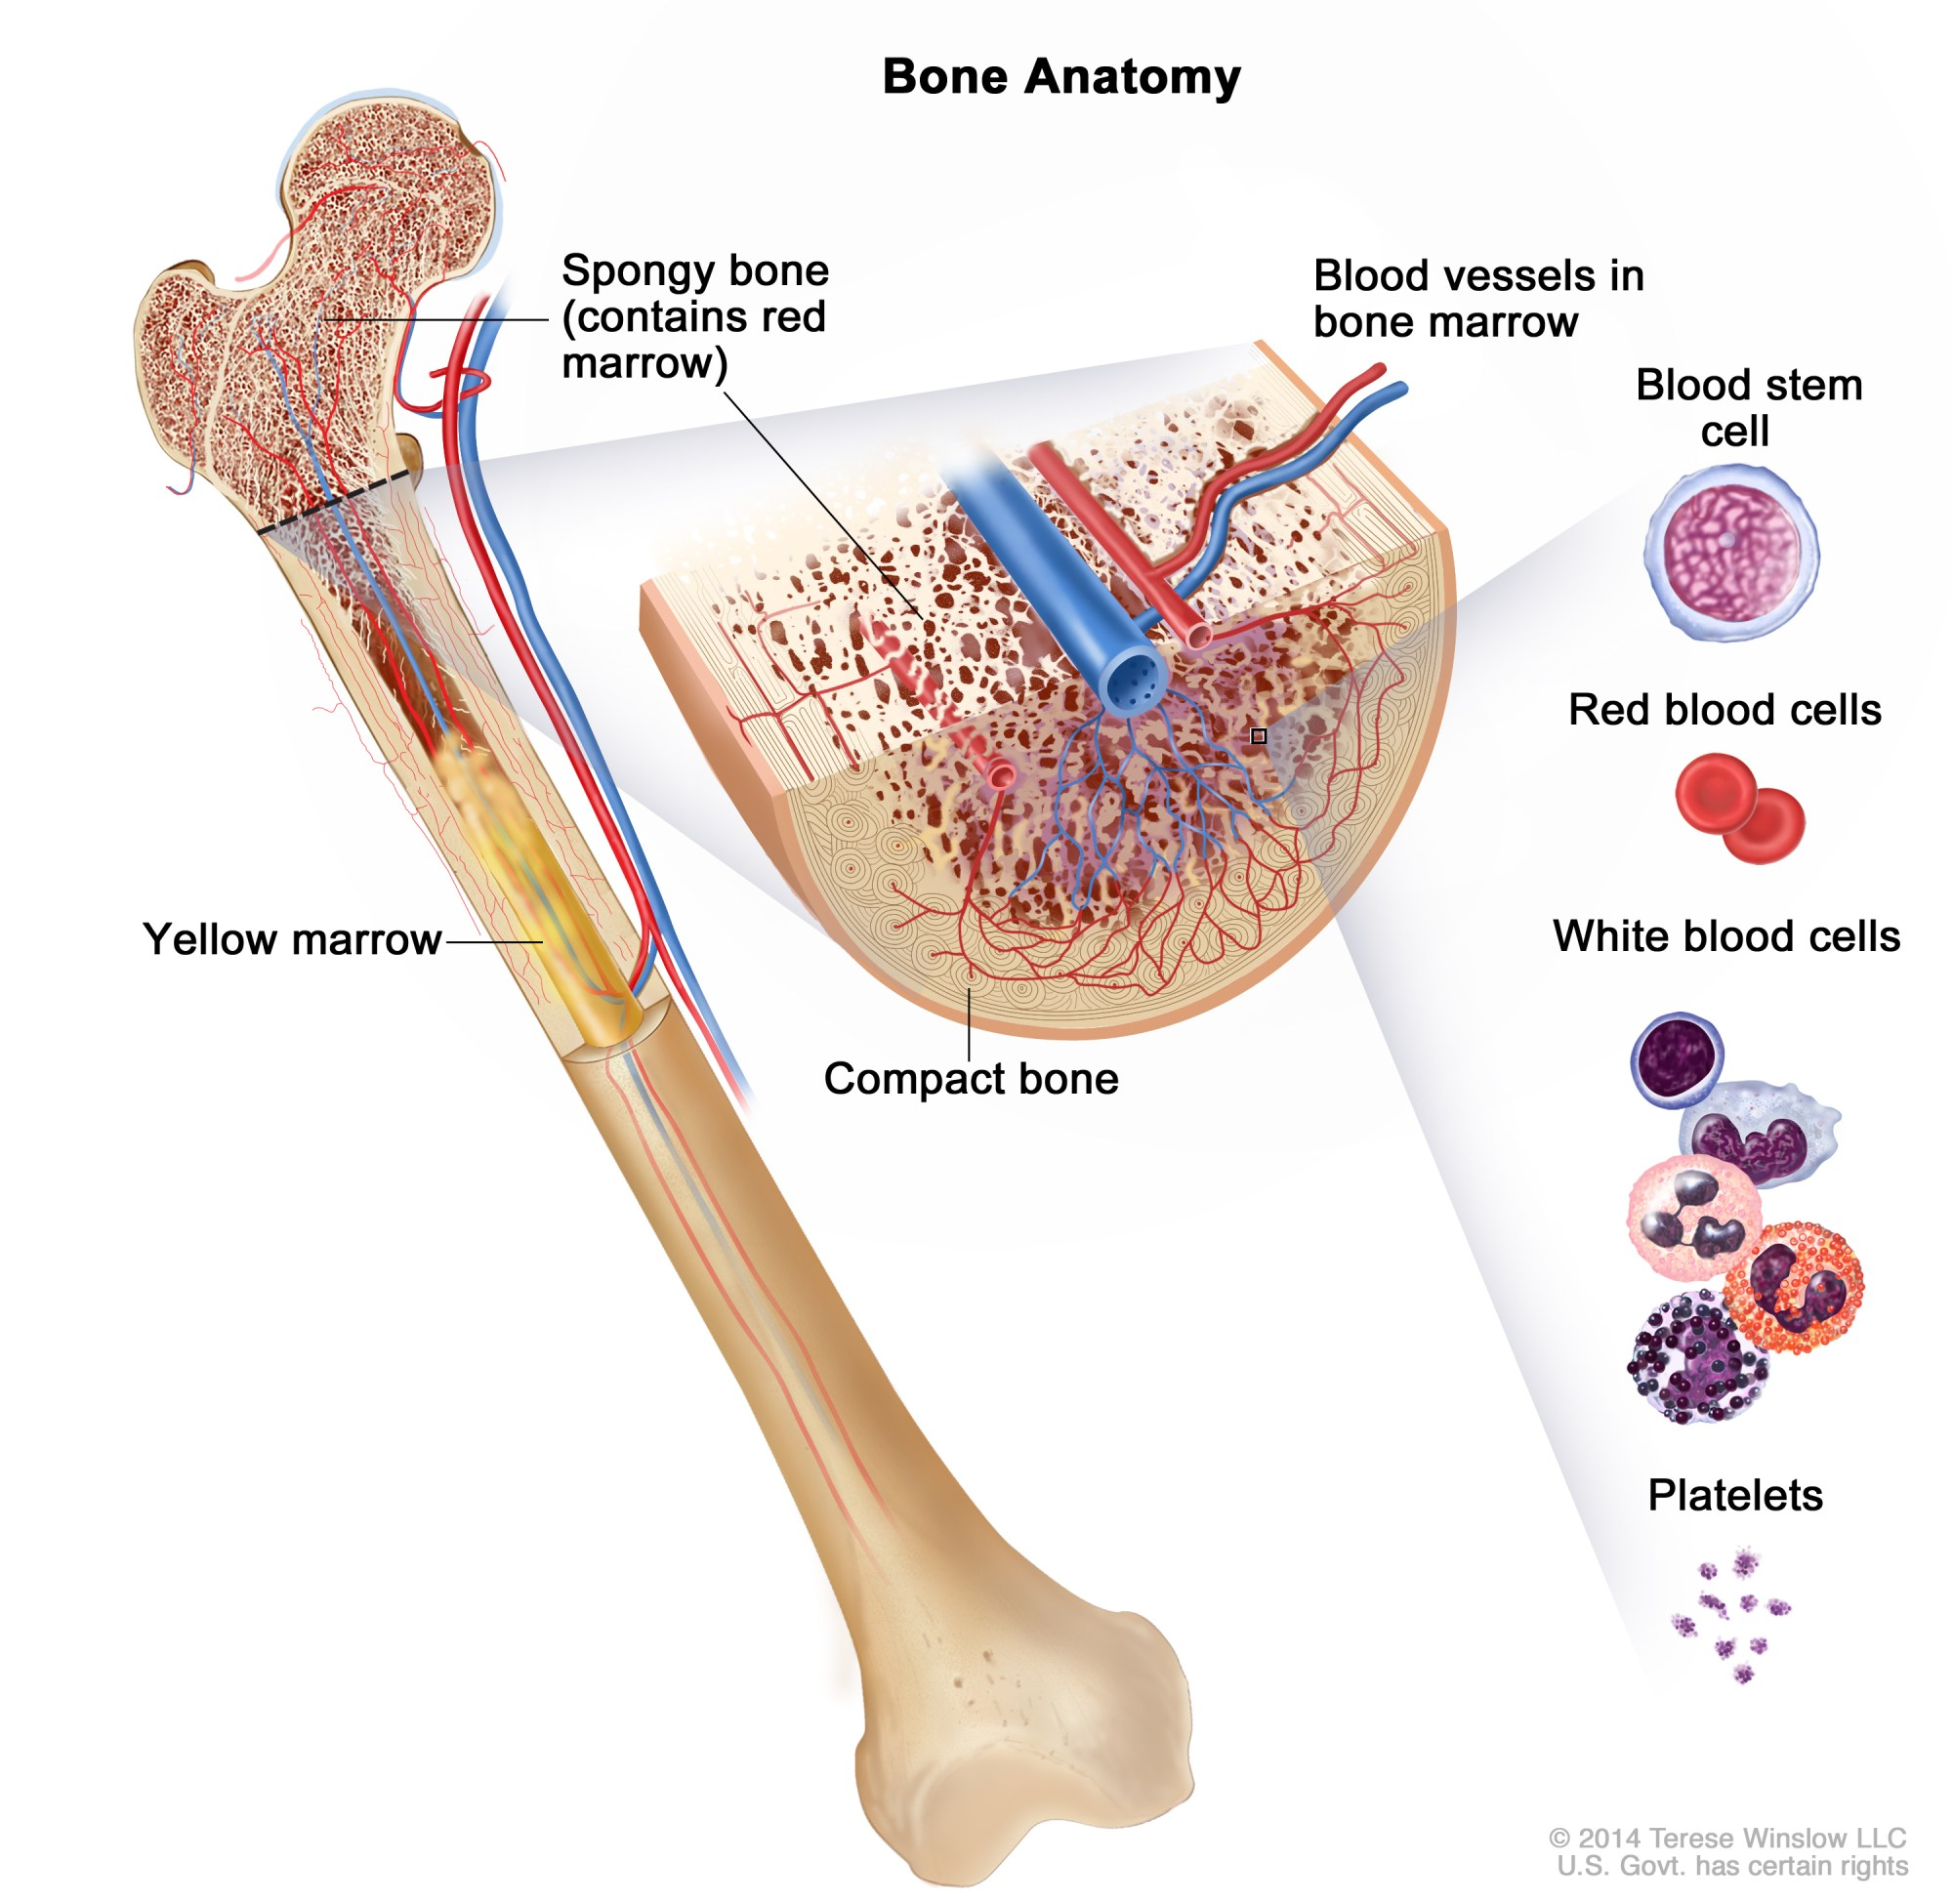 hight resolution of anatomy of the bone drawing shows spongy bone red marrow and yellow marrow